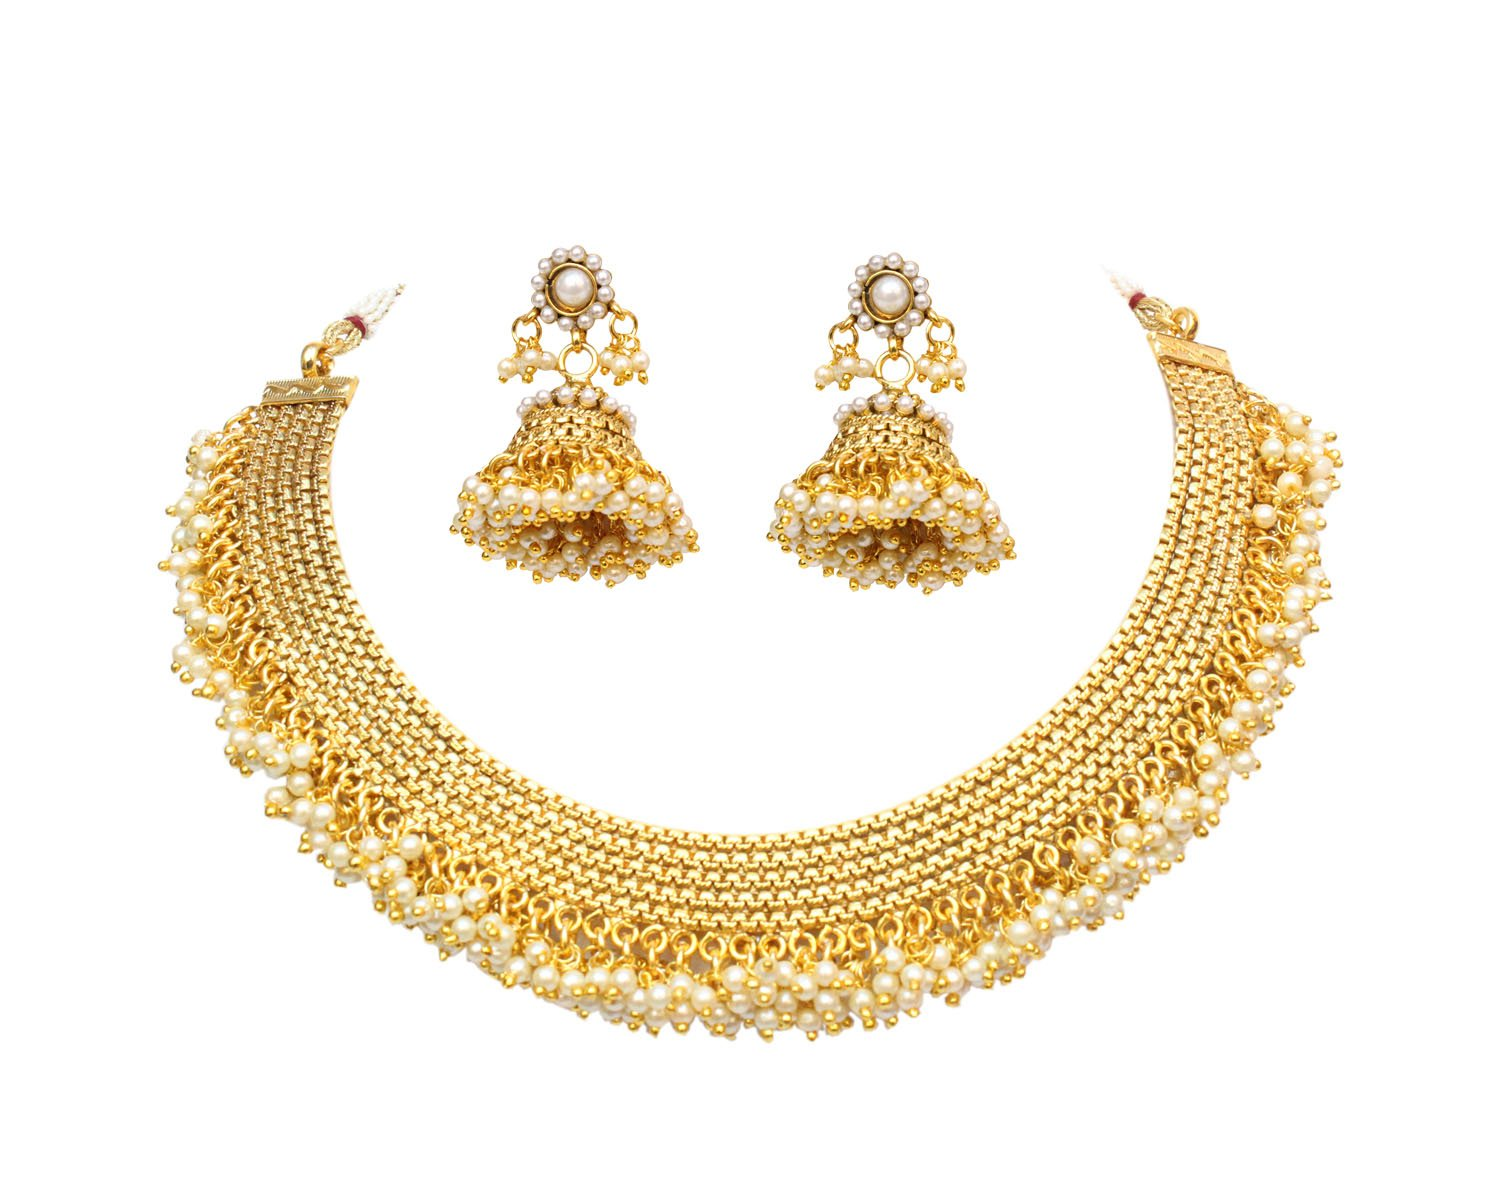 Ratna creation Exclusive Indian Bollywood Gold Plated Jadau Pearl Necklace & Jhumki Earring Set Bridal Wedding Jewelry